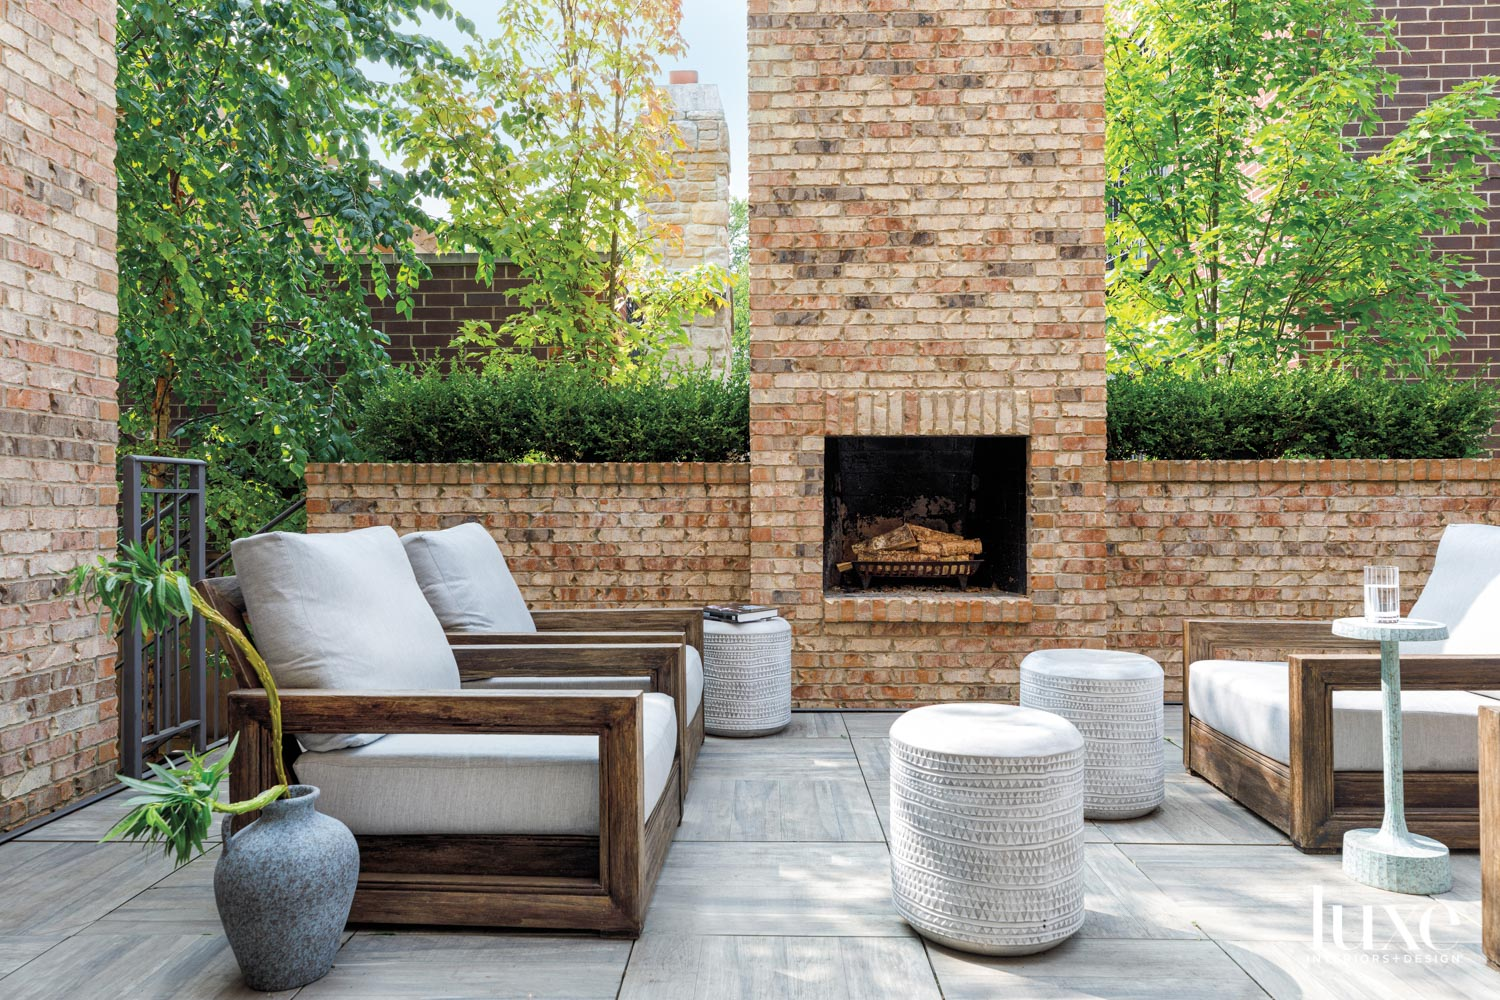 A seating area surrounding a...